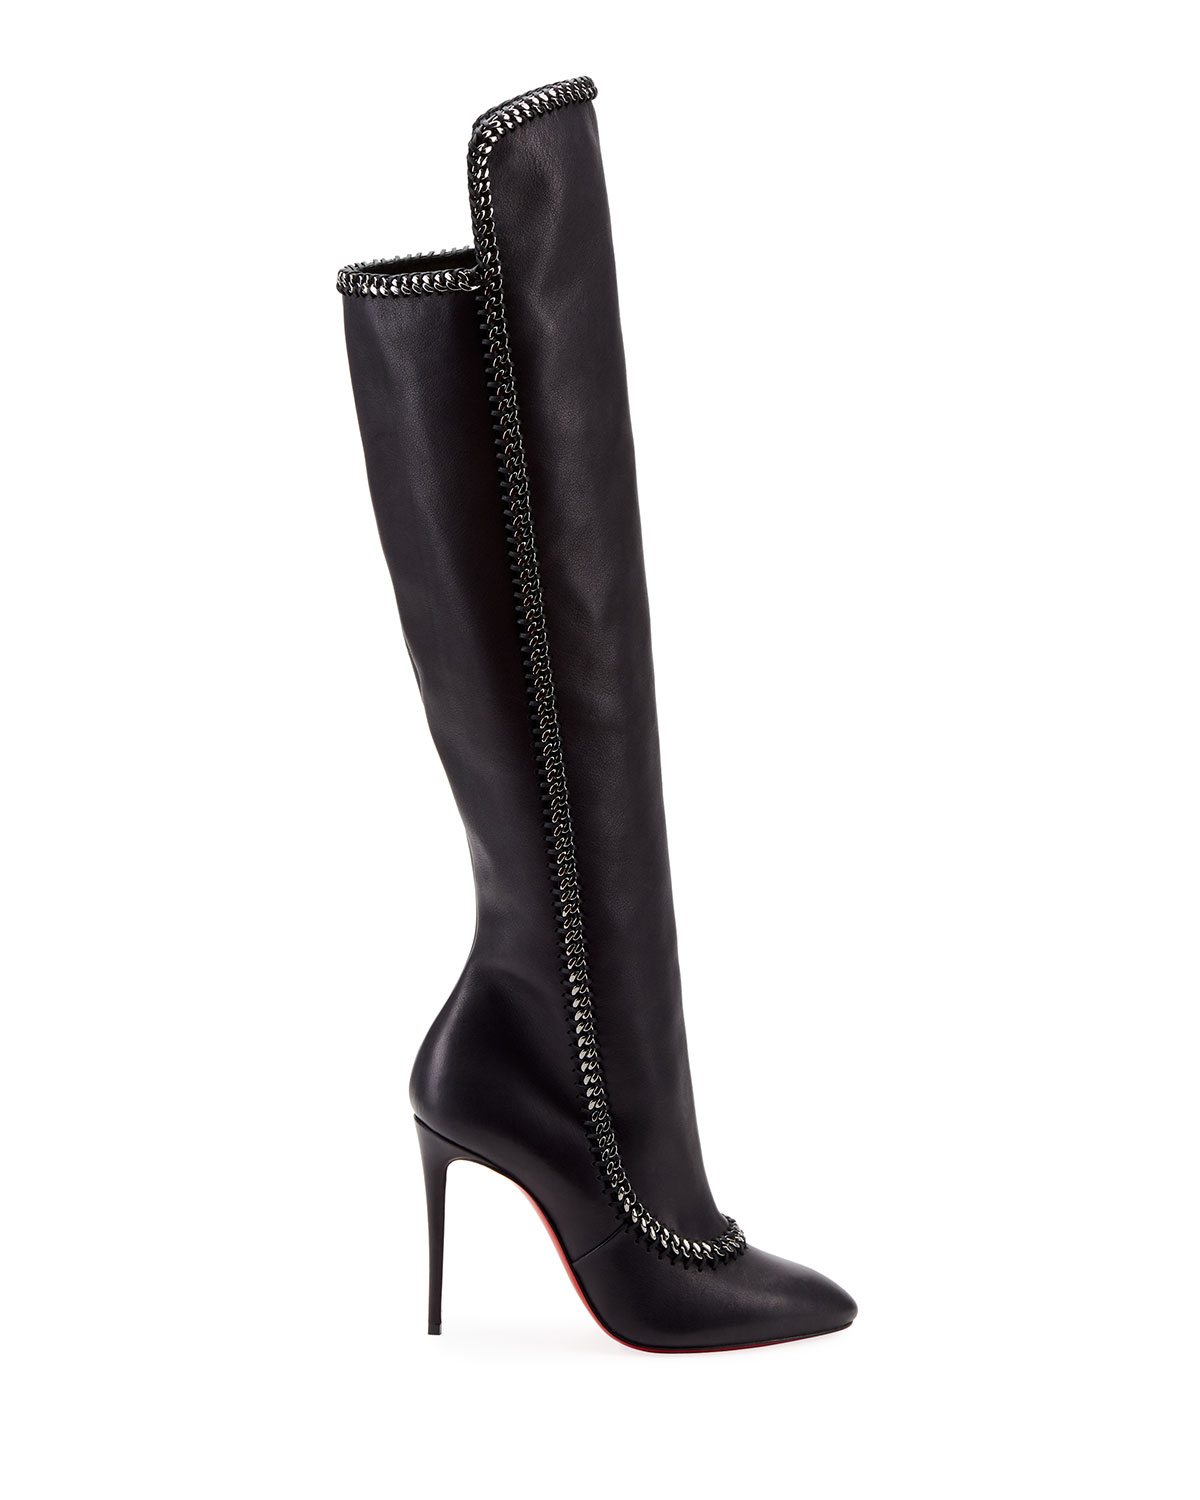 385a92e43e0 Clemence Botta Red Sole Boots